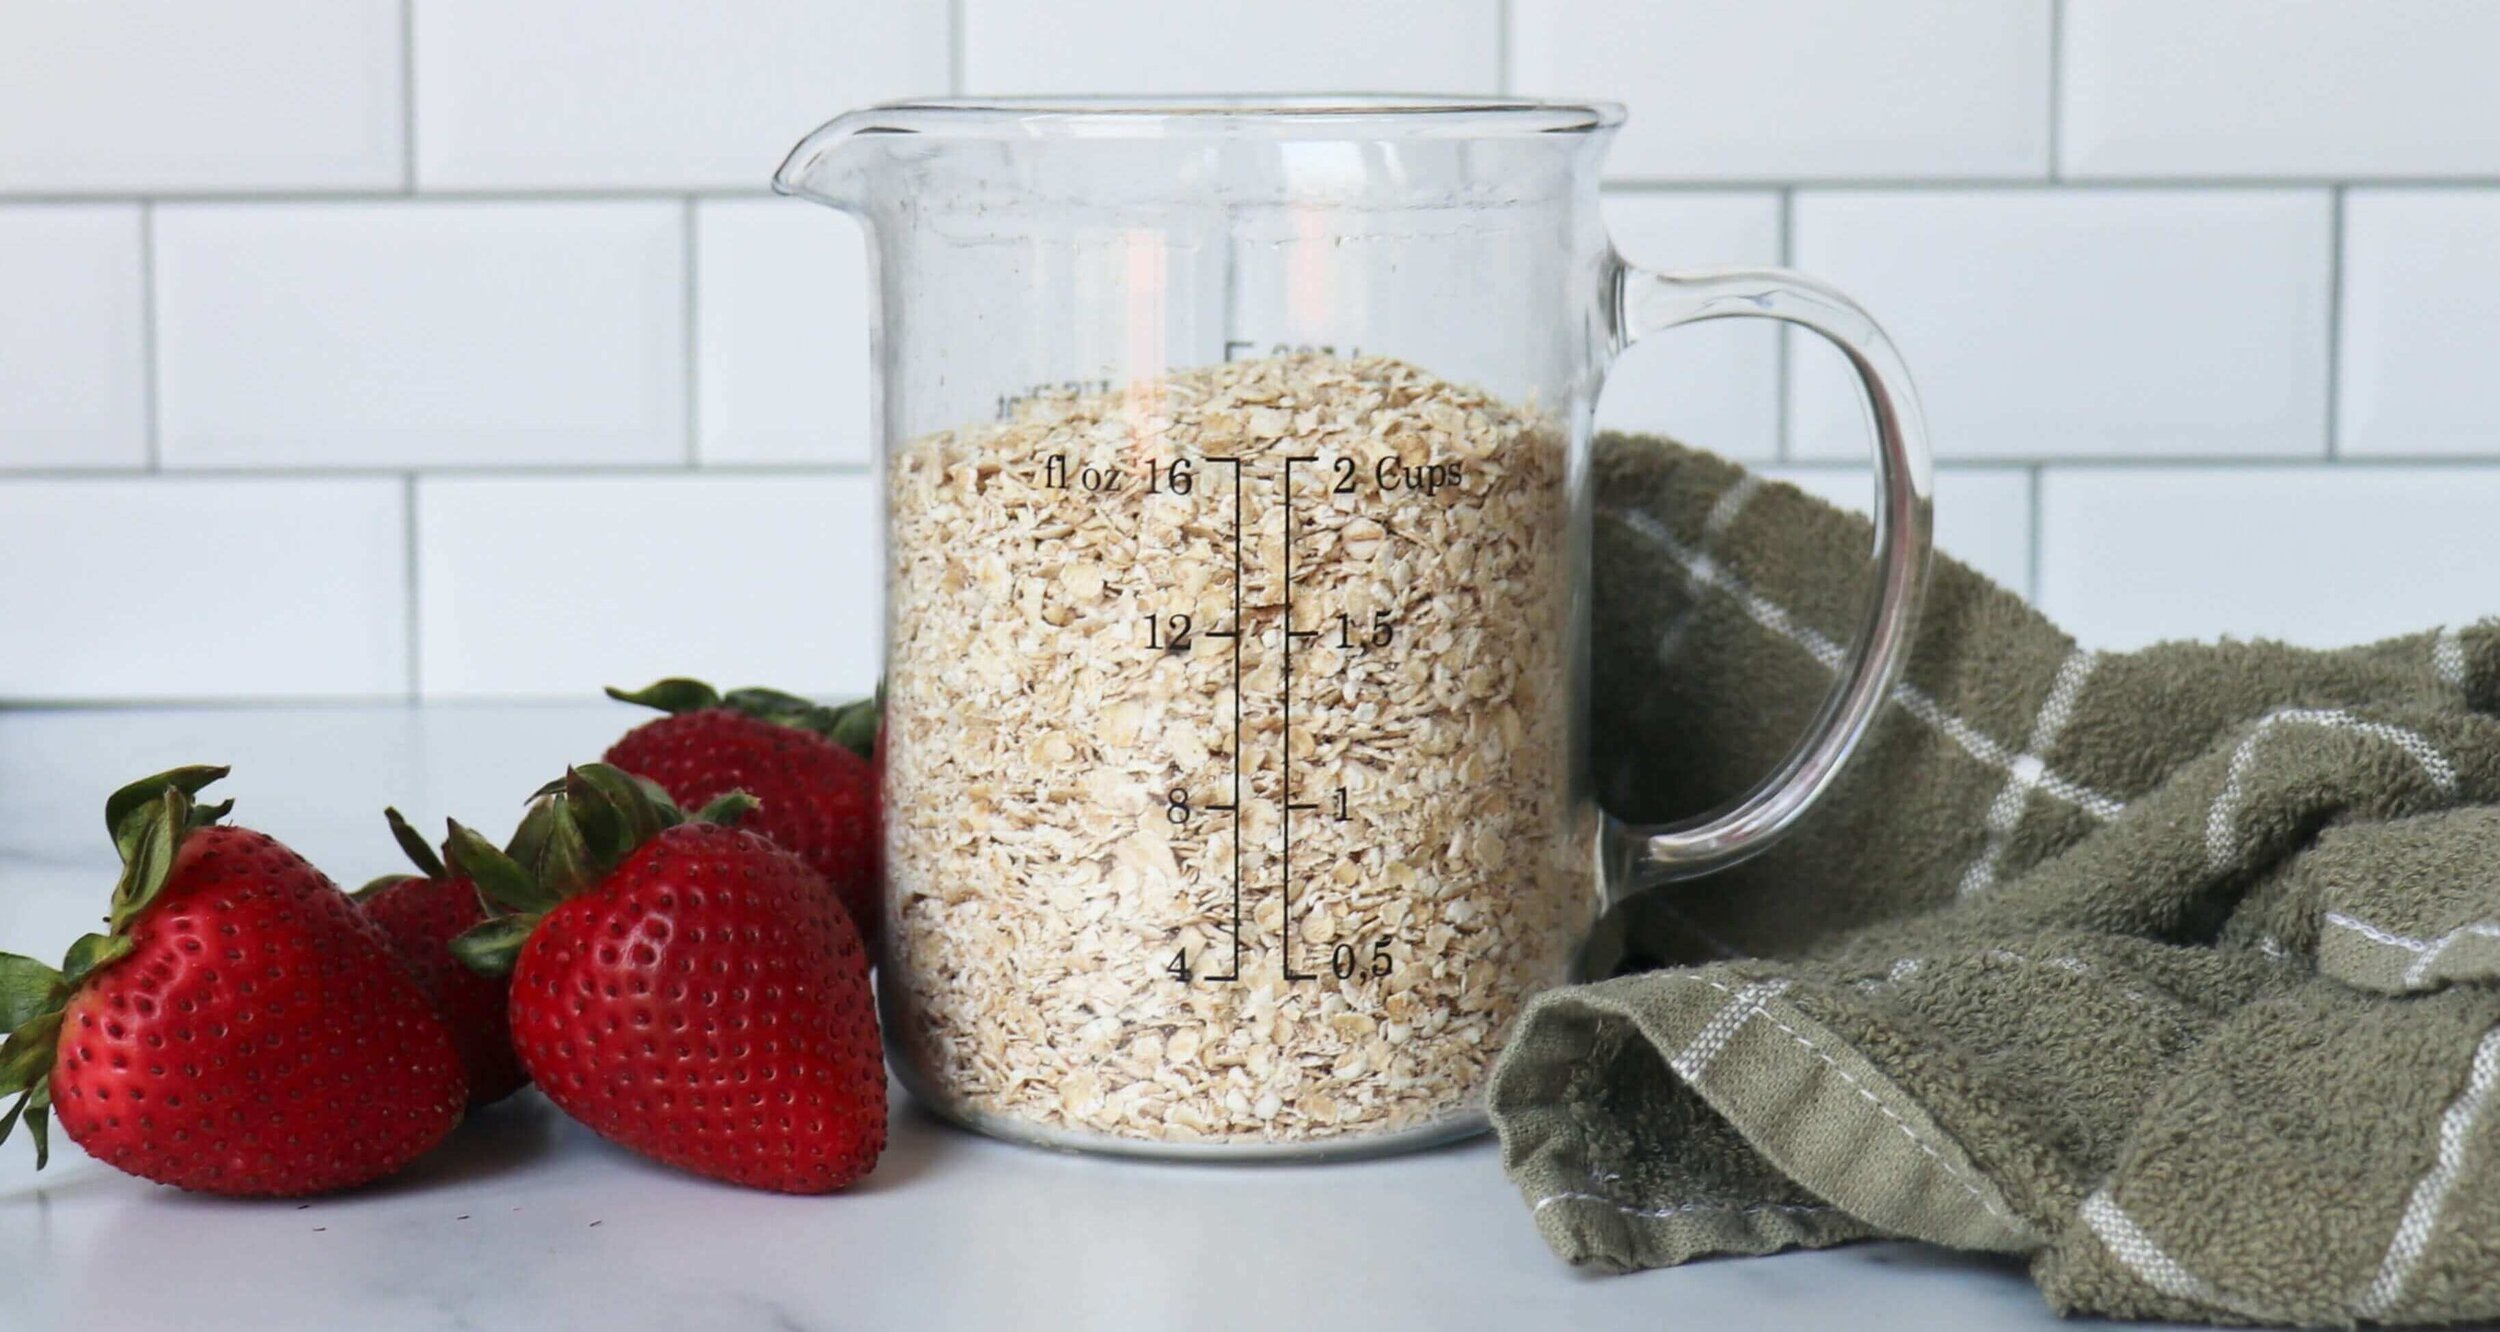 Organic Healthy Oats in a Container